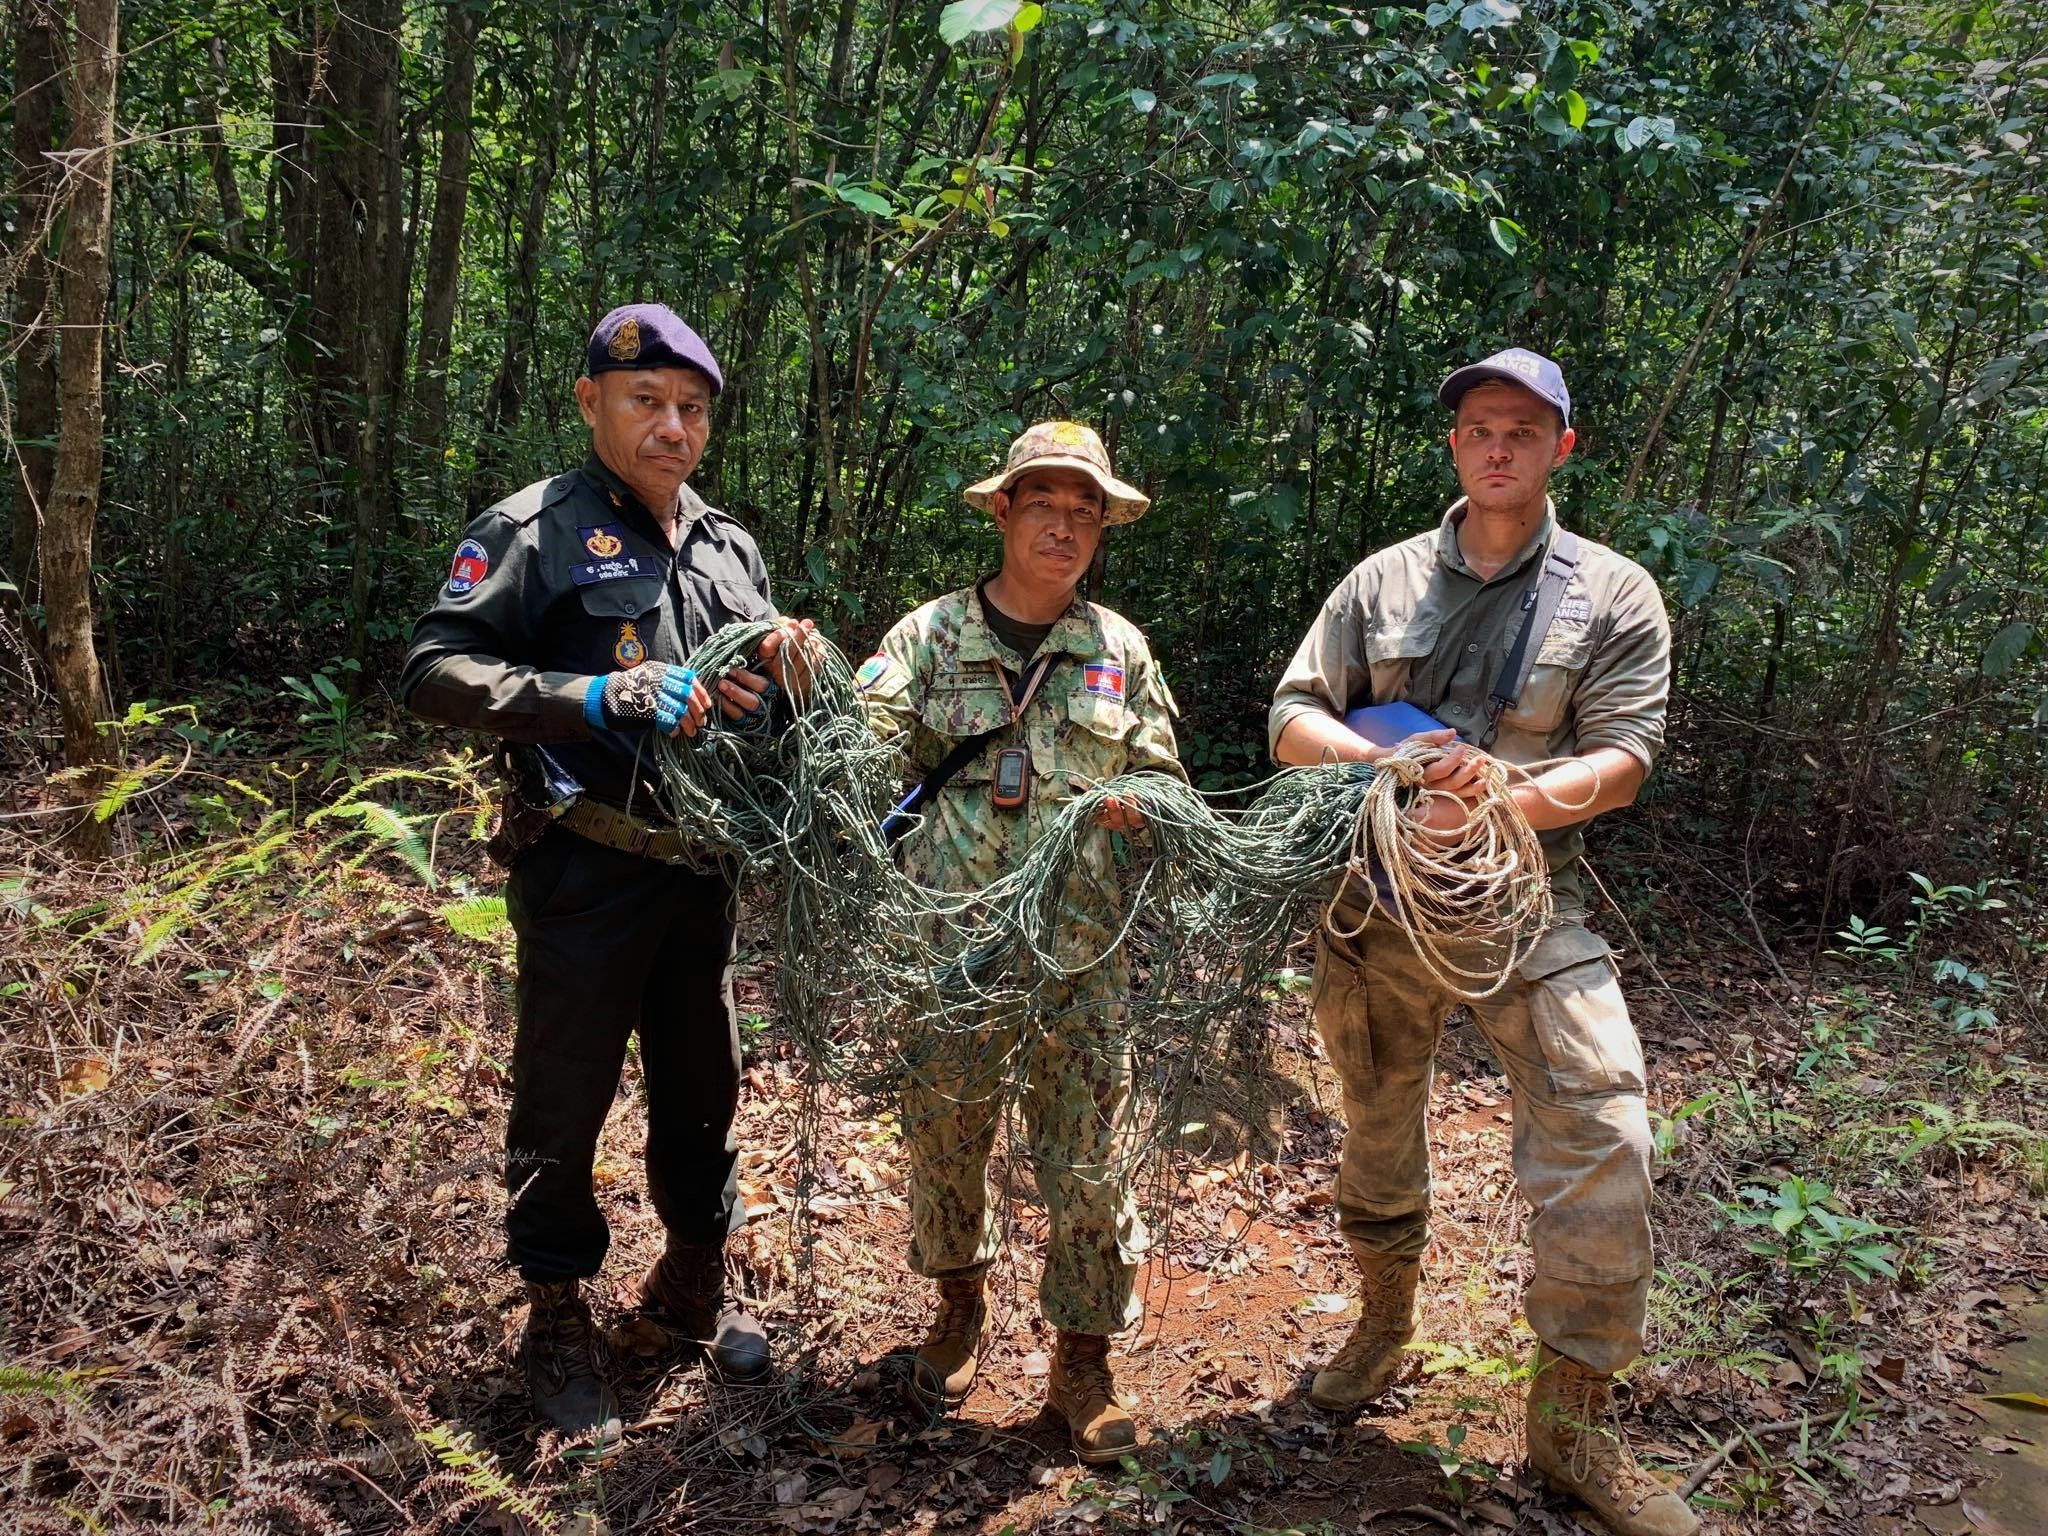 snares Snares are lethal weapons that trap and kill animals Wildlife Alliance rangers remouving wild animal traps